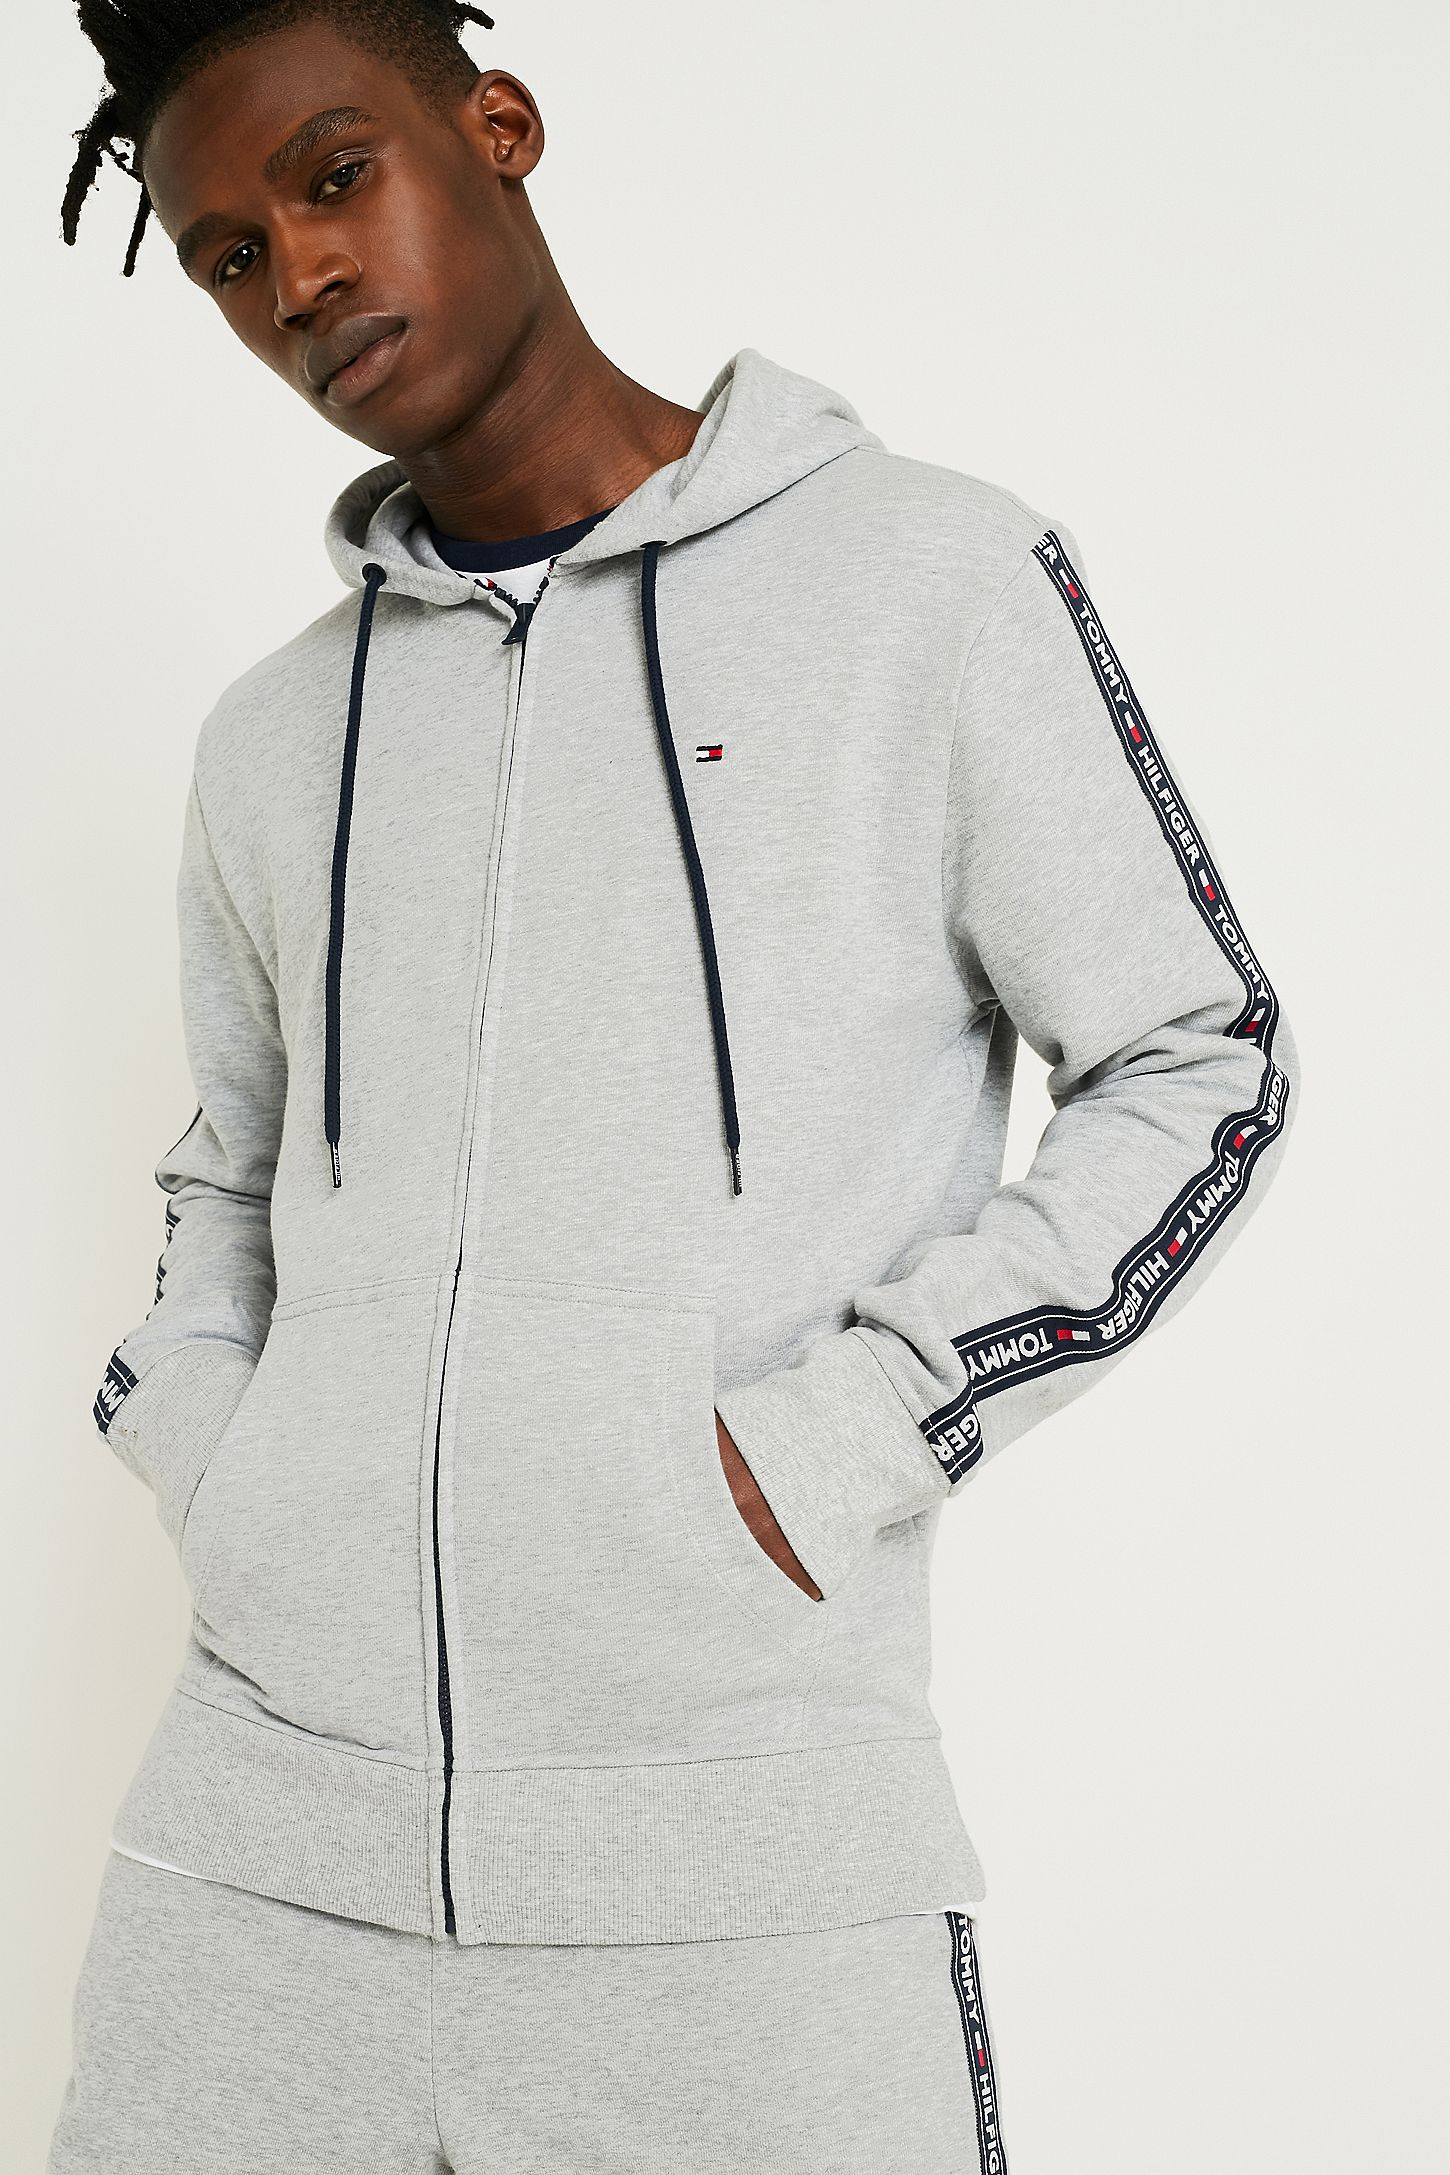 c9e9efed2 Tommy Hilfiger Taped Sleeve Grey Hoodie. Click on image to zoom. Hover to  zoom. Double Tap to Zoom